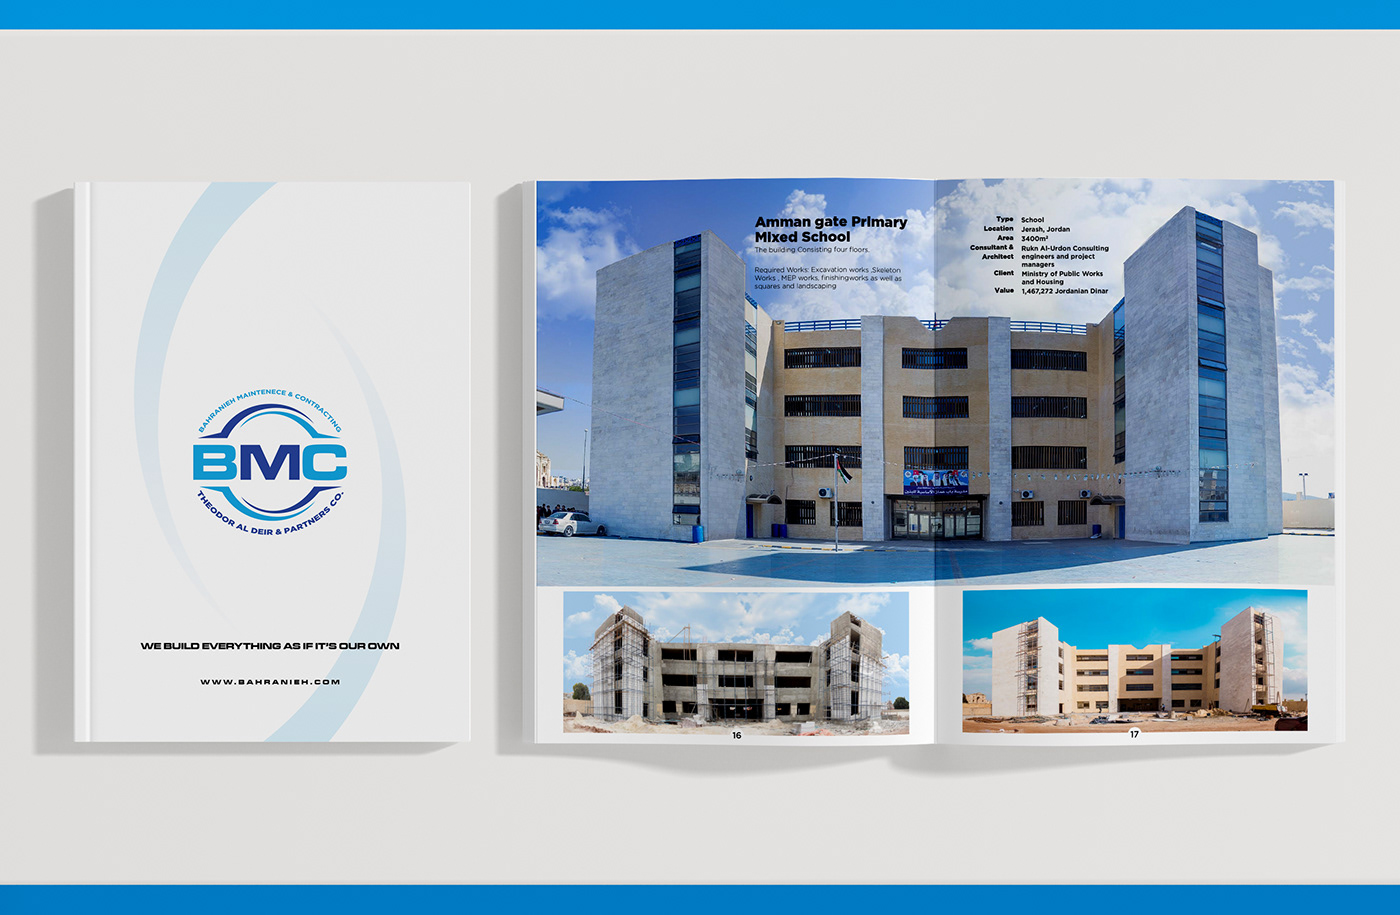 architicture architicture photography constructions photography magazine panorama Panorama photography Photography  publication